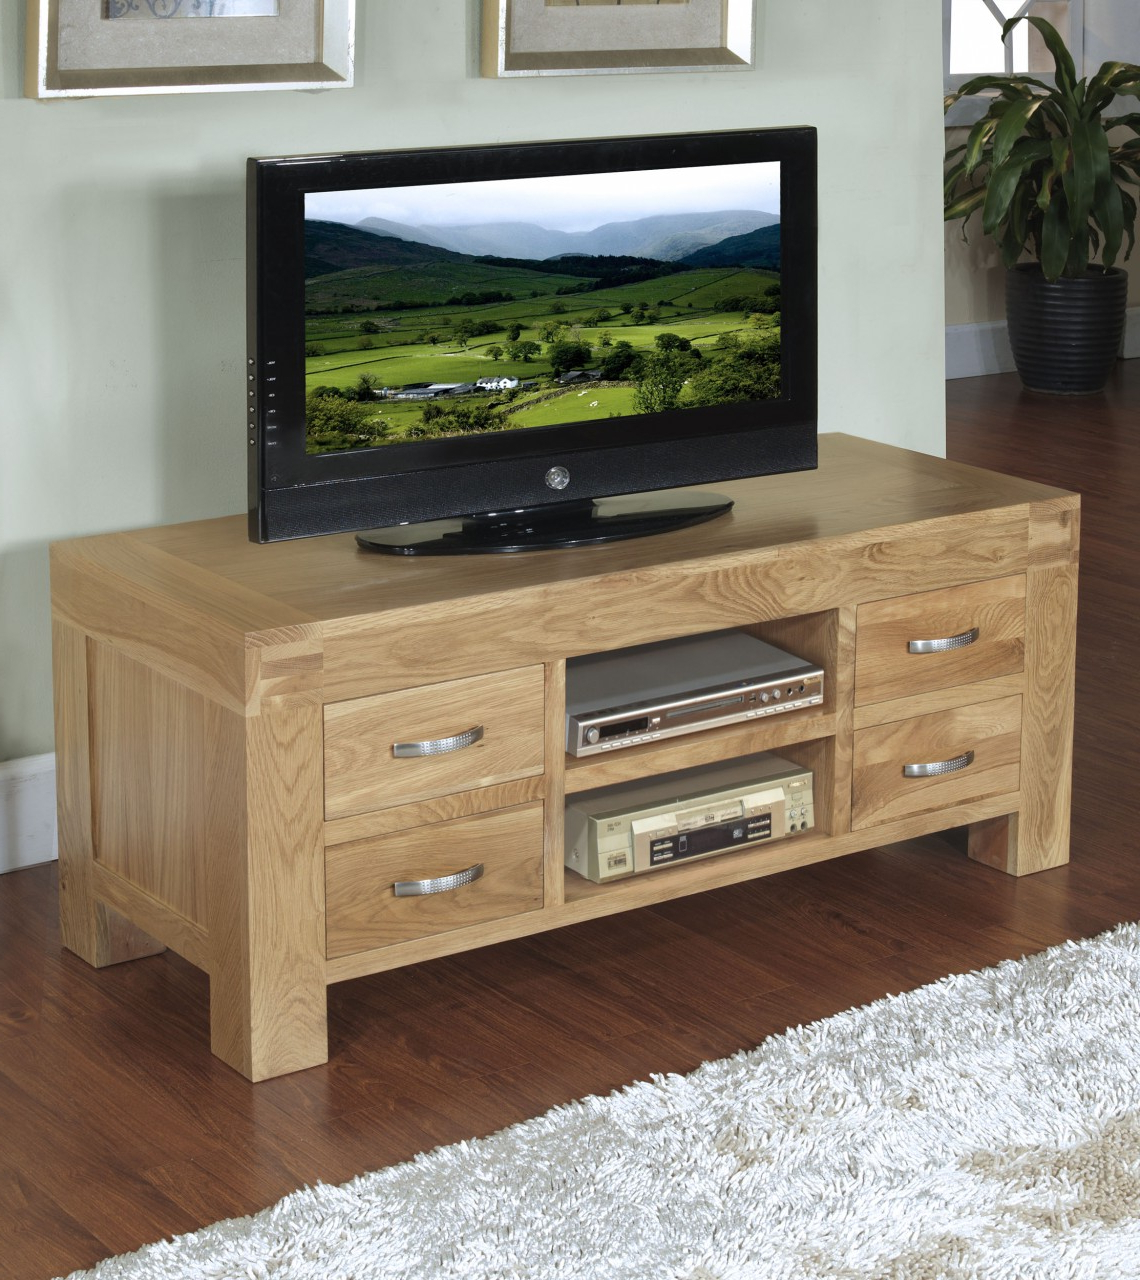 Best And Newest Reclaimed Wood Tv Stands Natural Oak Stand Consoles For Flat Screens Throughout Rustic Wood Tv Cabinets (View 1 of 20)